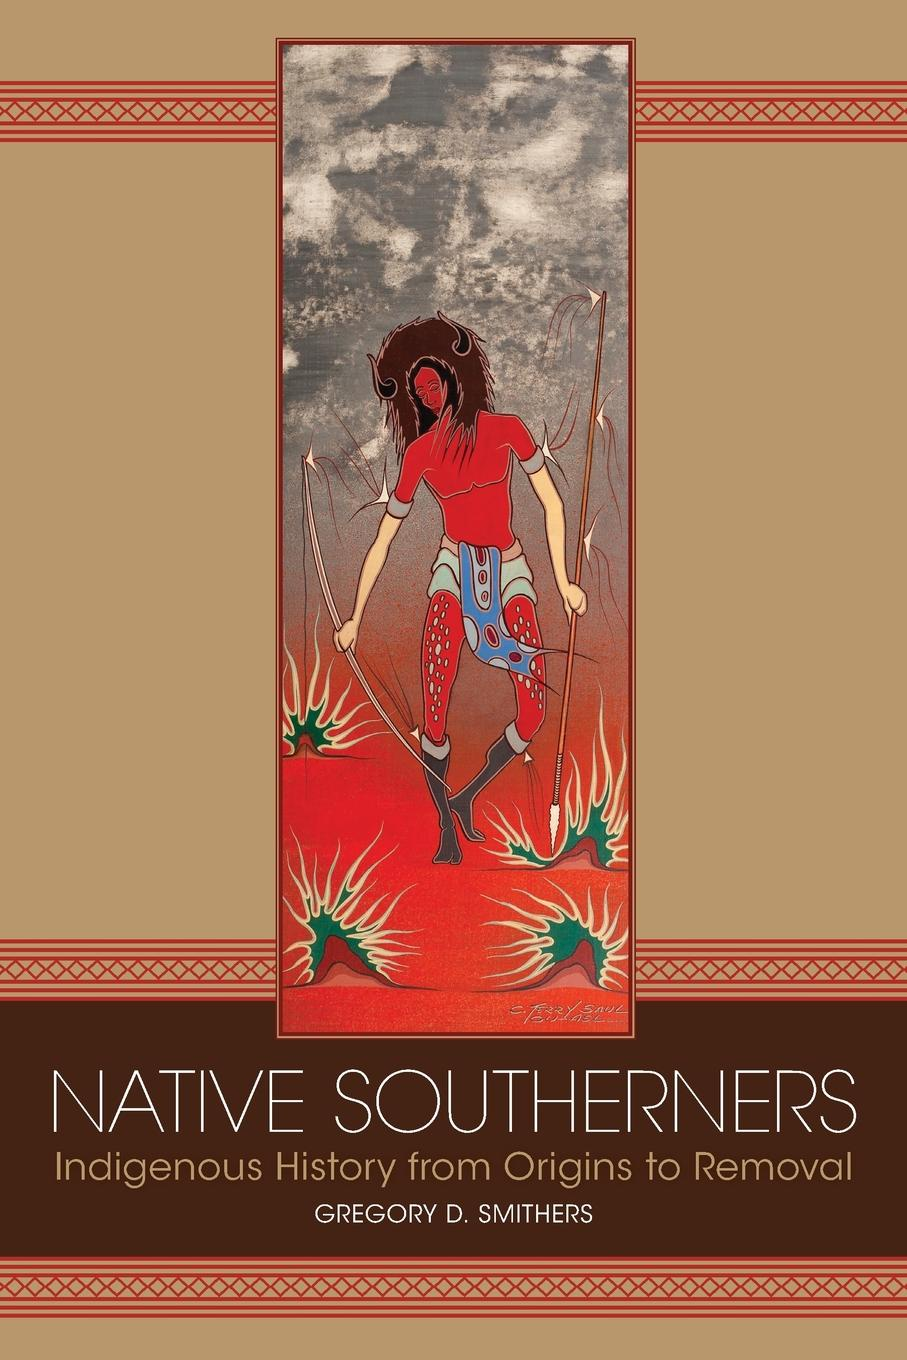 цена на Gregory D. Smithers Native Southerners. Indigenous History from Origins to Removal